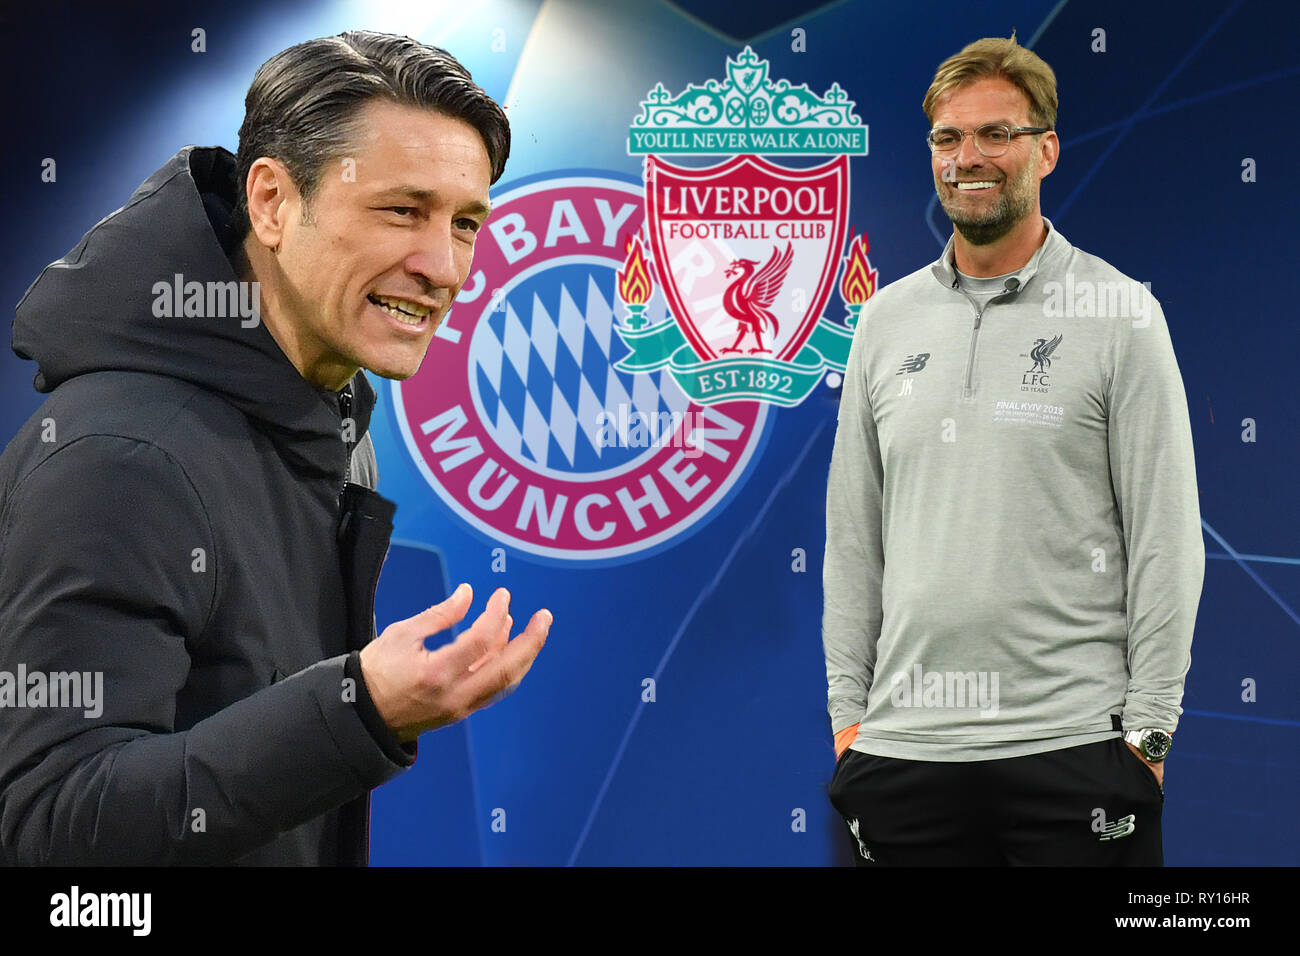 PHOTO MOUNTAIN: Preview of the CL Final Fantasy Tournament: Niko KOVAC (coach FC Bayern Munich, left) and Juergen KLOPP (coach Liverpool) meet. FC Bayern Munich (M) - Liverpool (LIV), Football Champions League, Round of 16, on 13/03/2019. ALLIANZAREN A. DFL REGULATION PROHIBIT ANY USE OF PHOTOGRAPHS AS IMAGE SEQUENCES AND / OR QUASI VIDEO. | usage worldwide - Stock Image